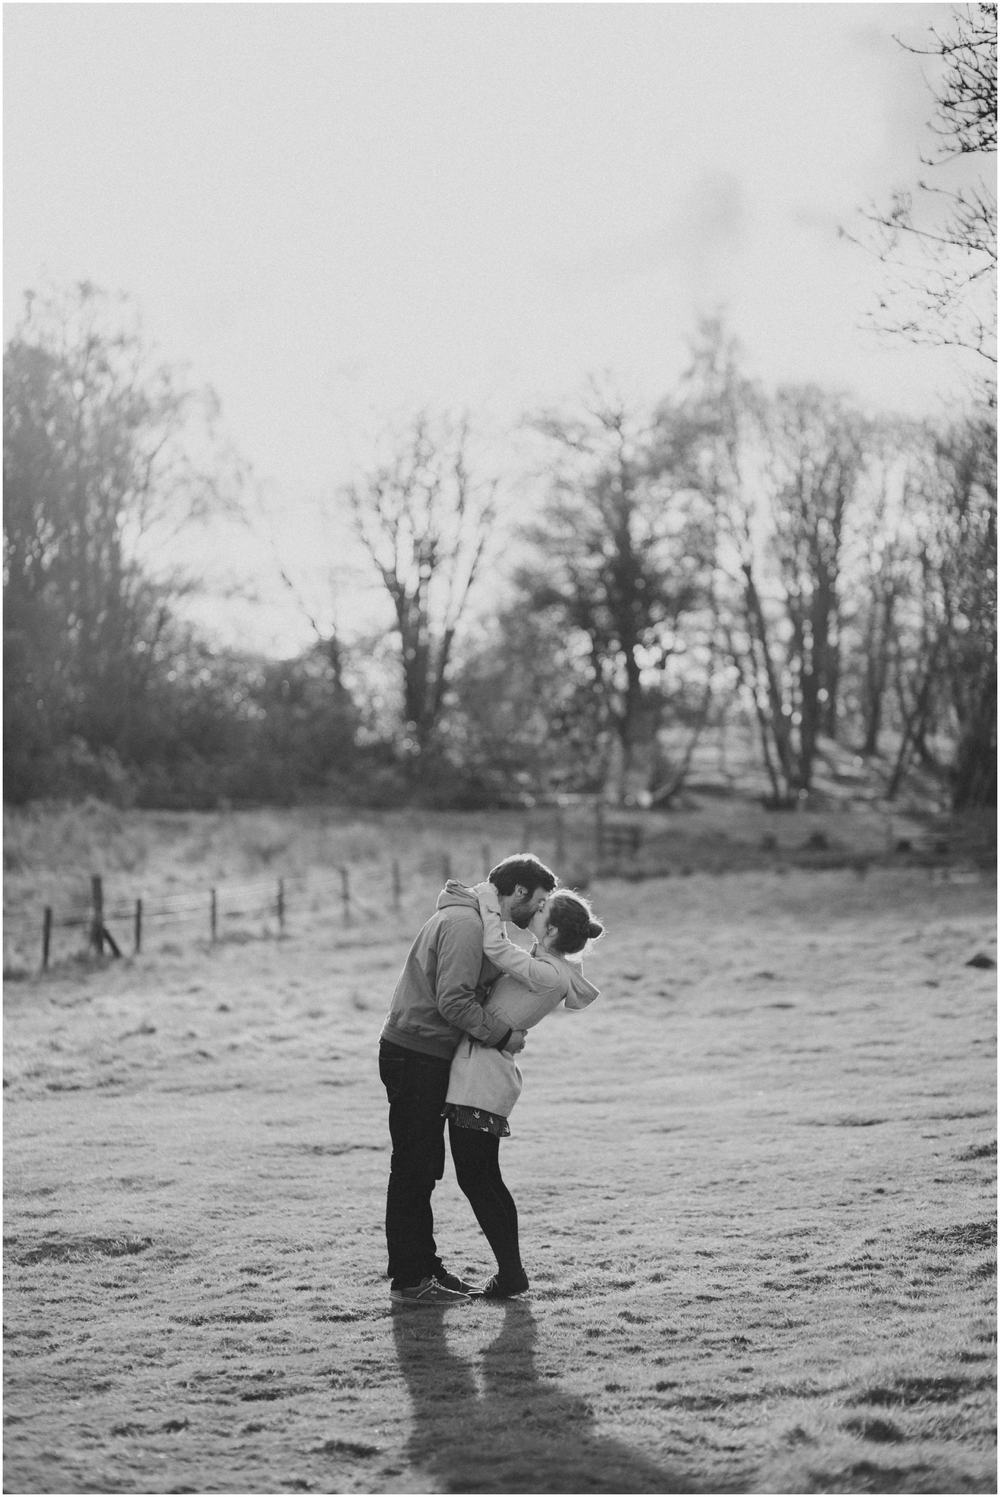 Fraser Thirza Photography 78 Glasgow Wedding Photographer Mugdock Country Park_0009.jpg